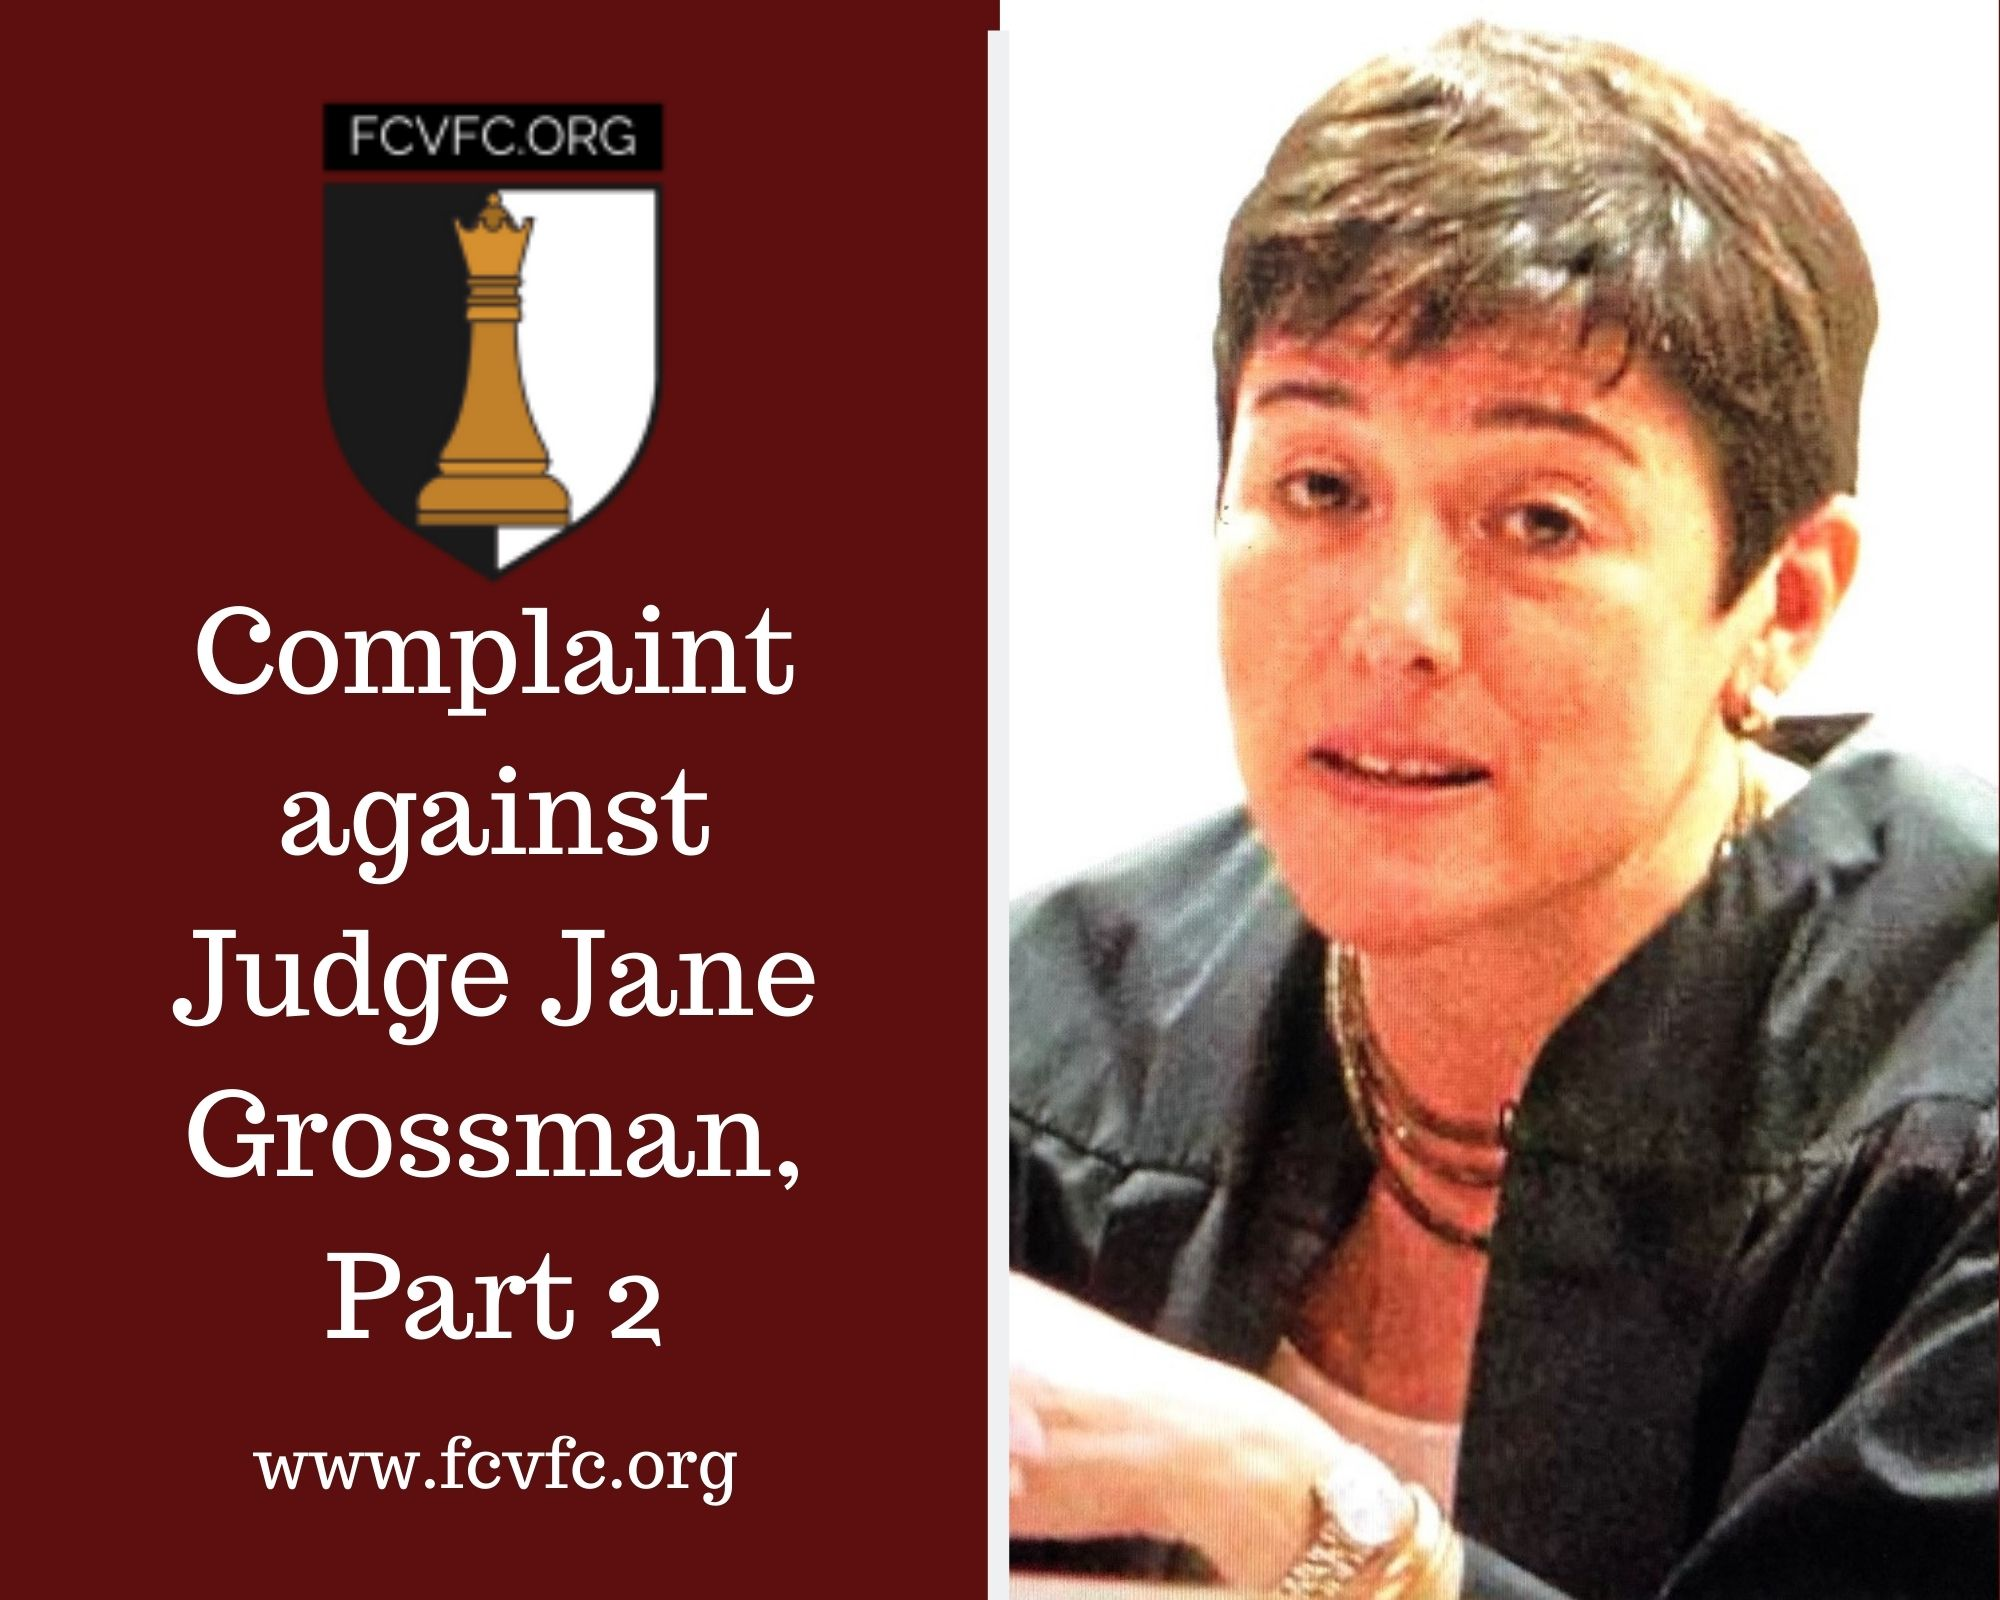 Complaint Against Judge Jane Grossman Part 2